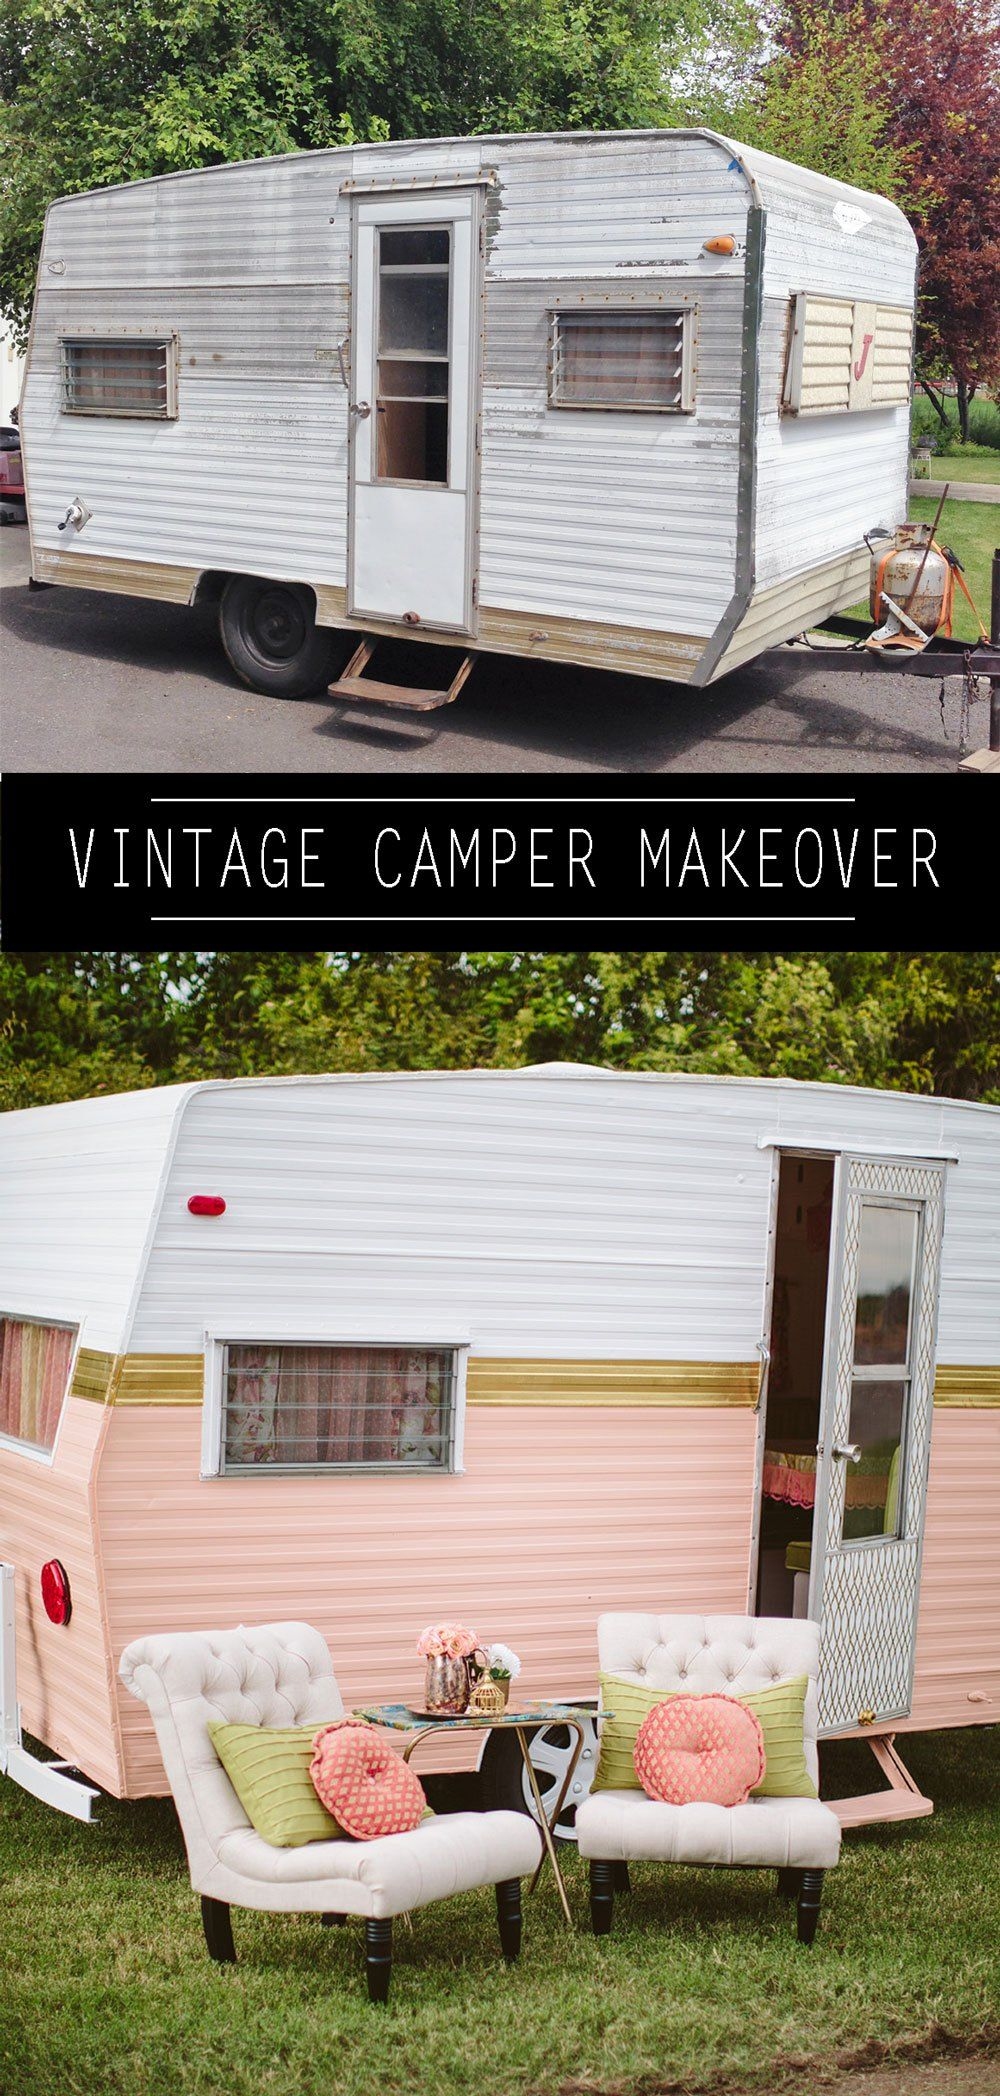 How To Paint A Vintage Camper Camper Makeover Color